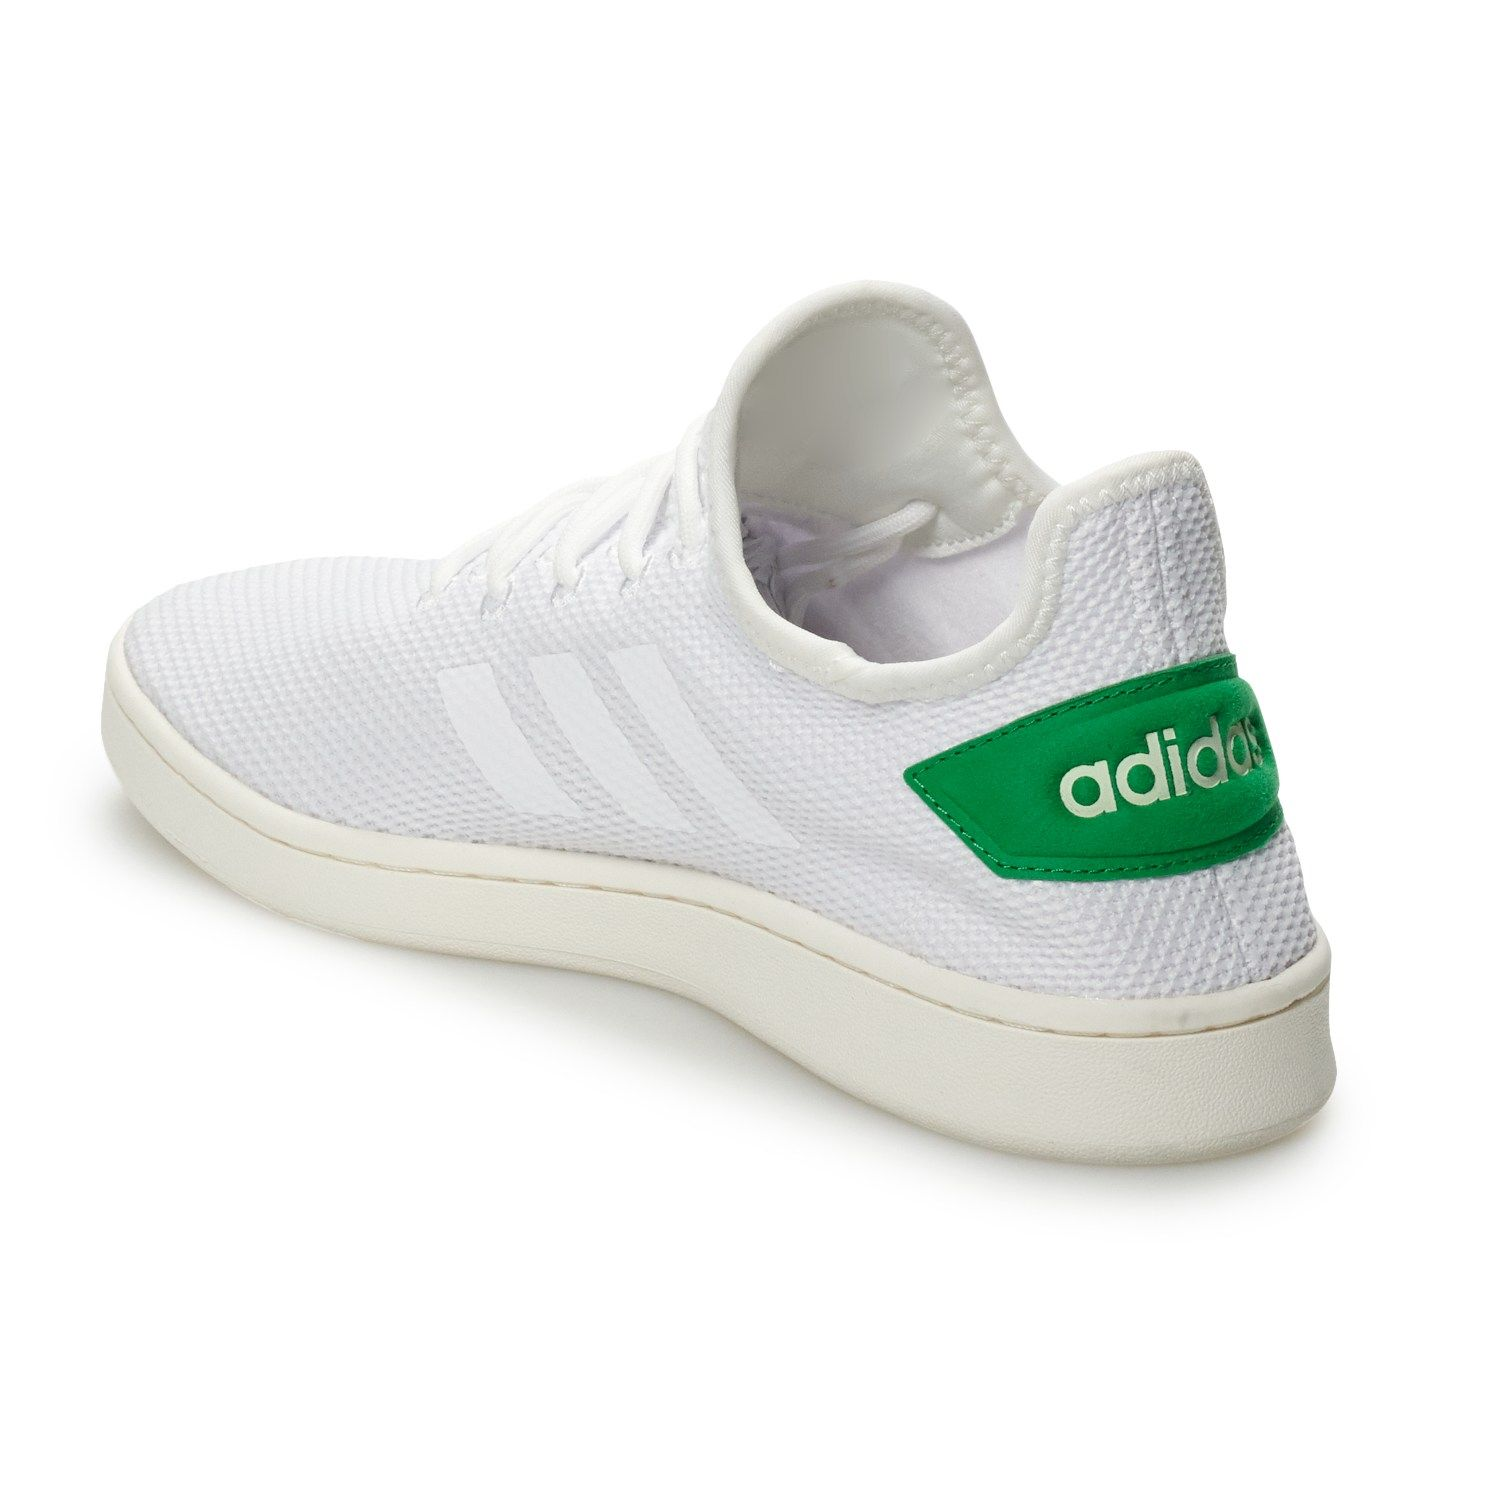 adidas Court Adapt Men's Sneakers #Court, #adidas, #Adapt